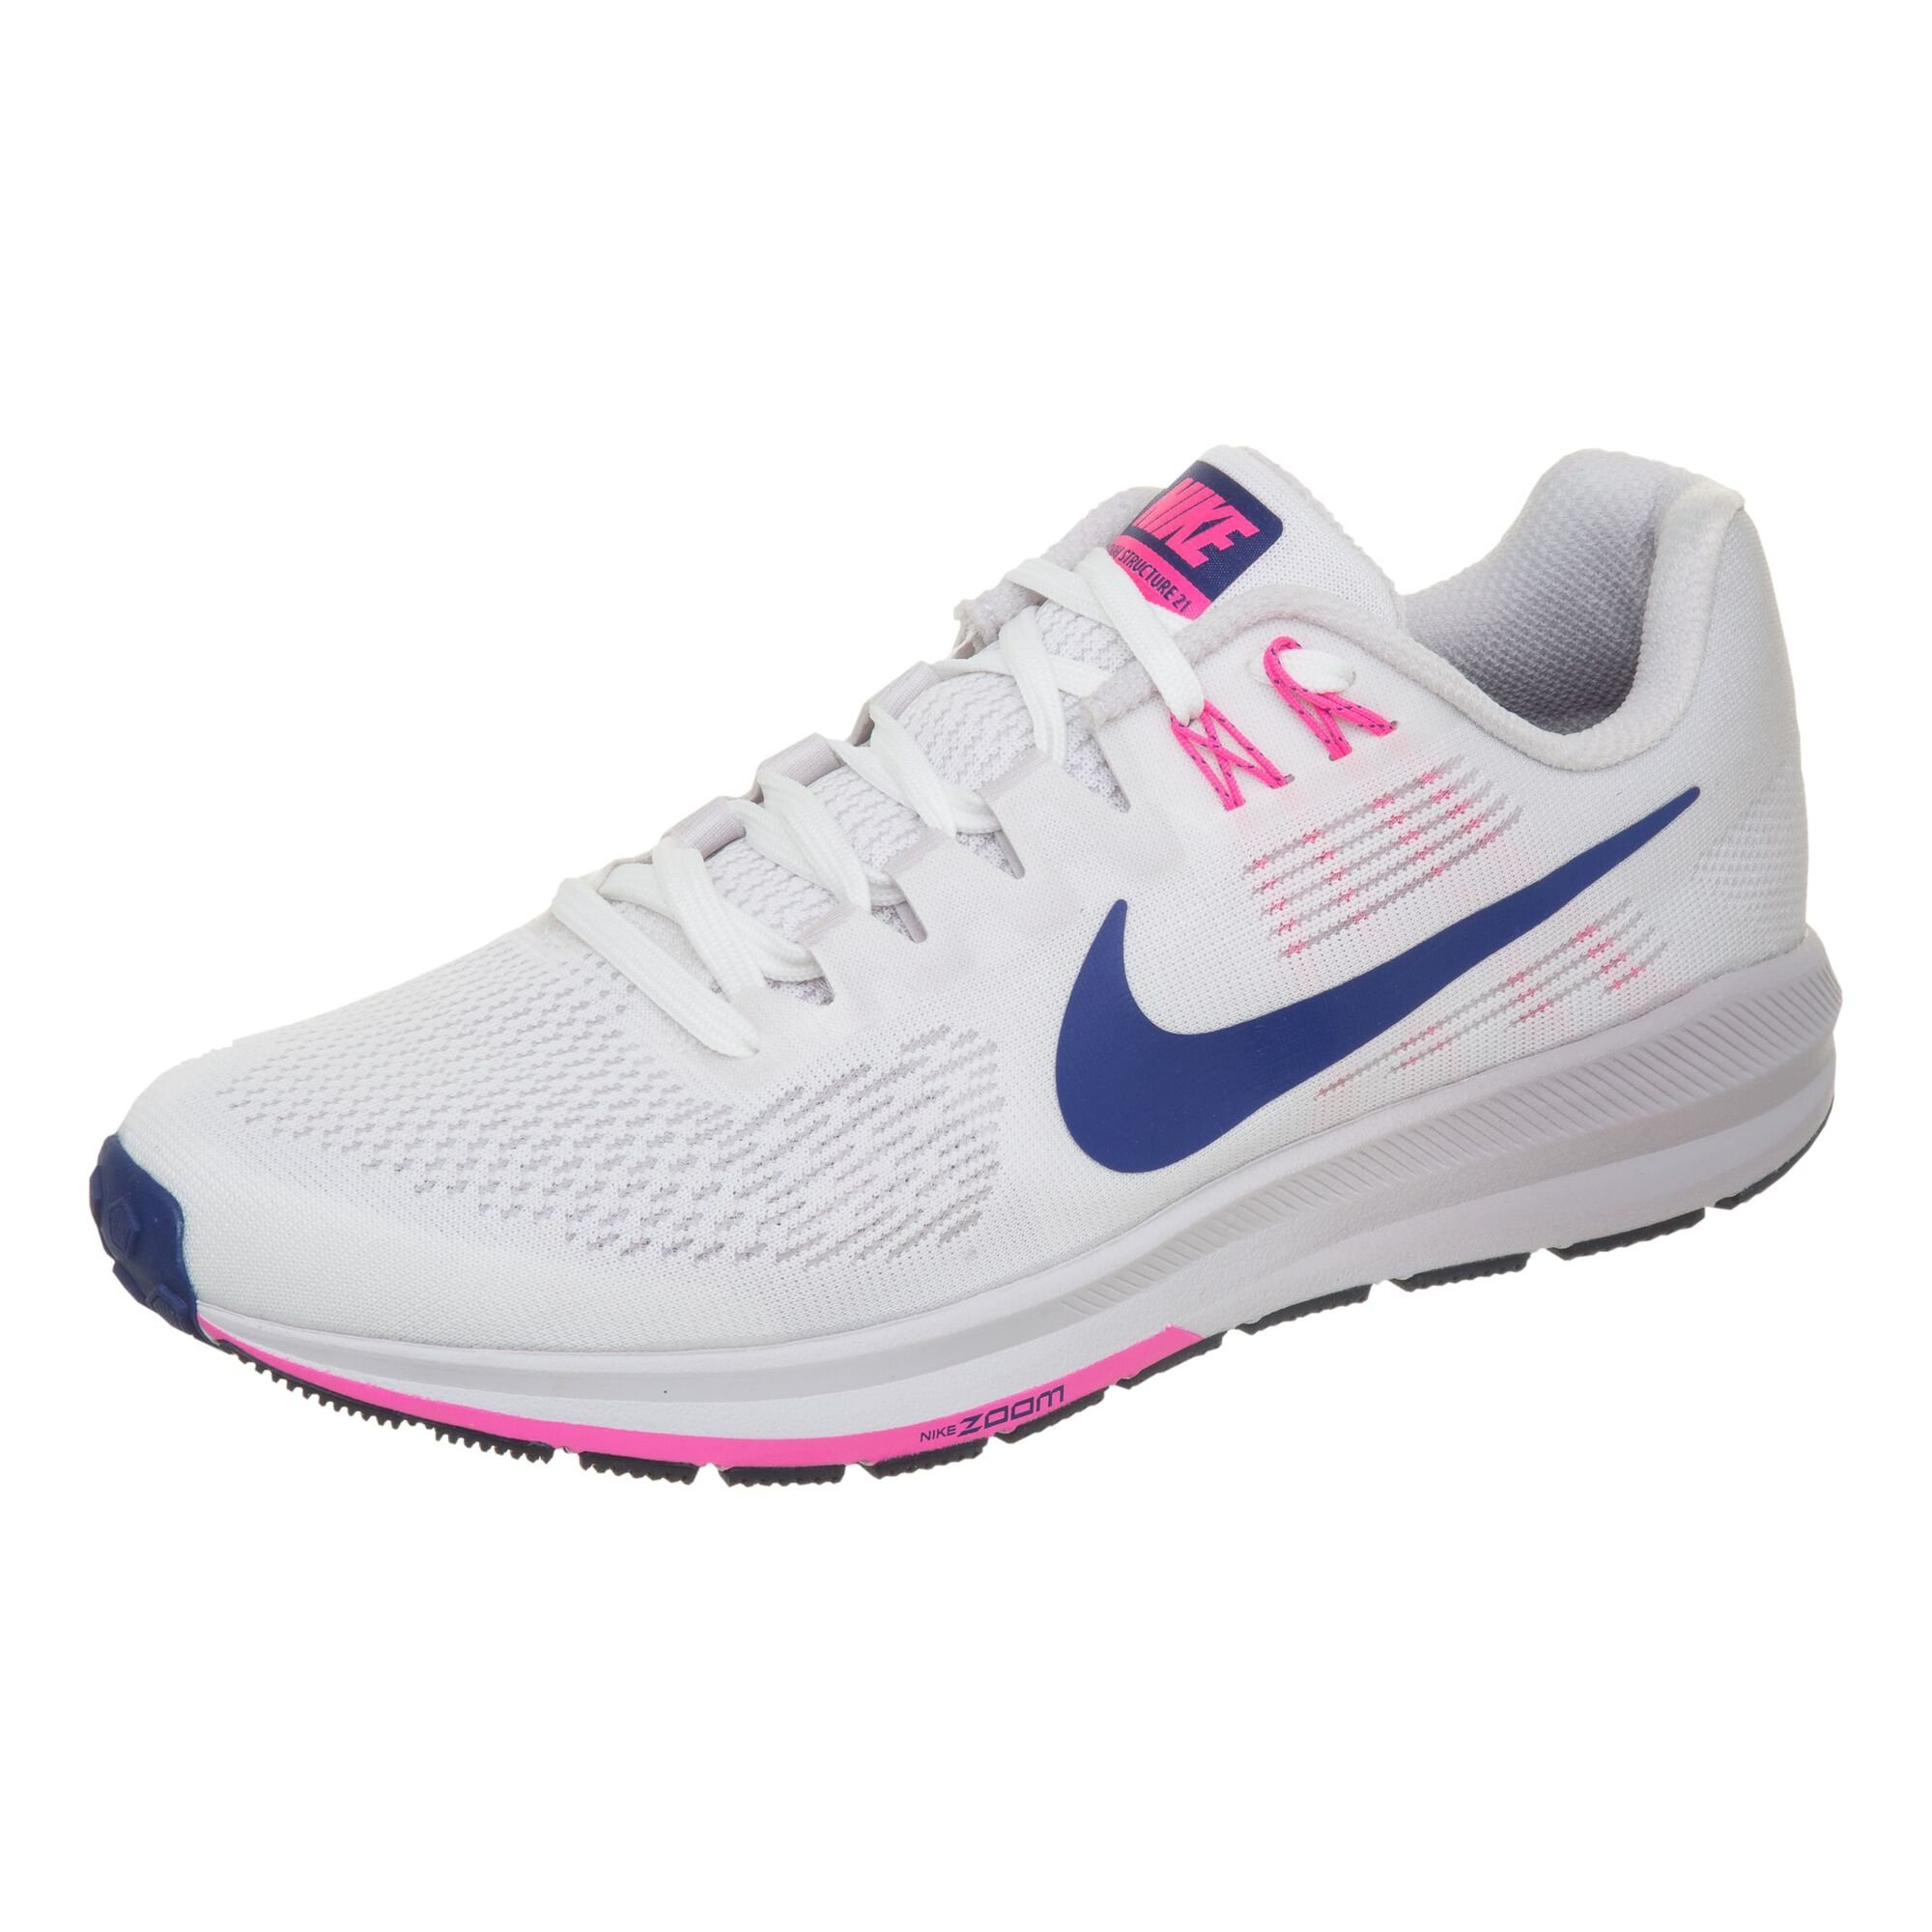 2d56c4dd6a5881 Nike · Nike · Nike · Nike · Nike · Nike · Nike · Nike · Nike · Nike. Air  Zoom Structure 21 ...